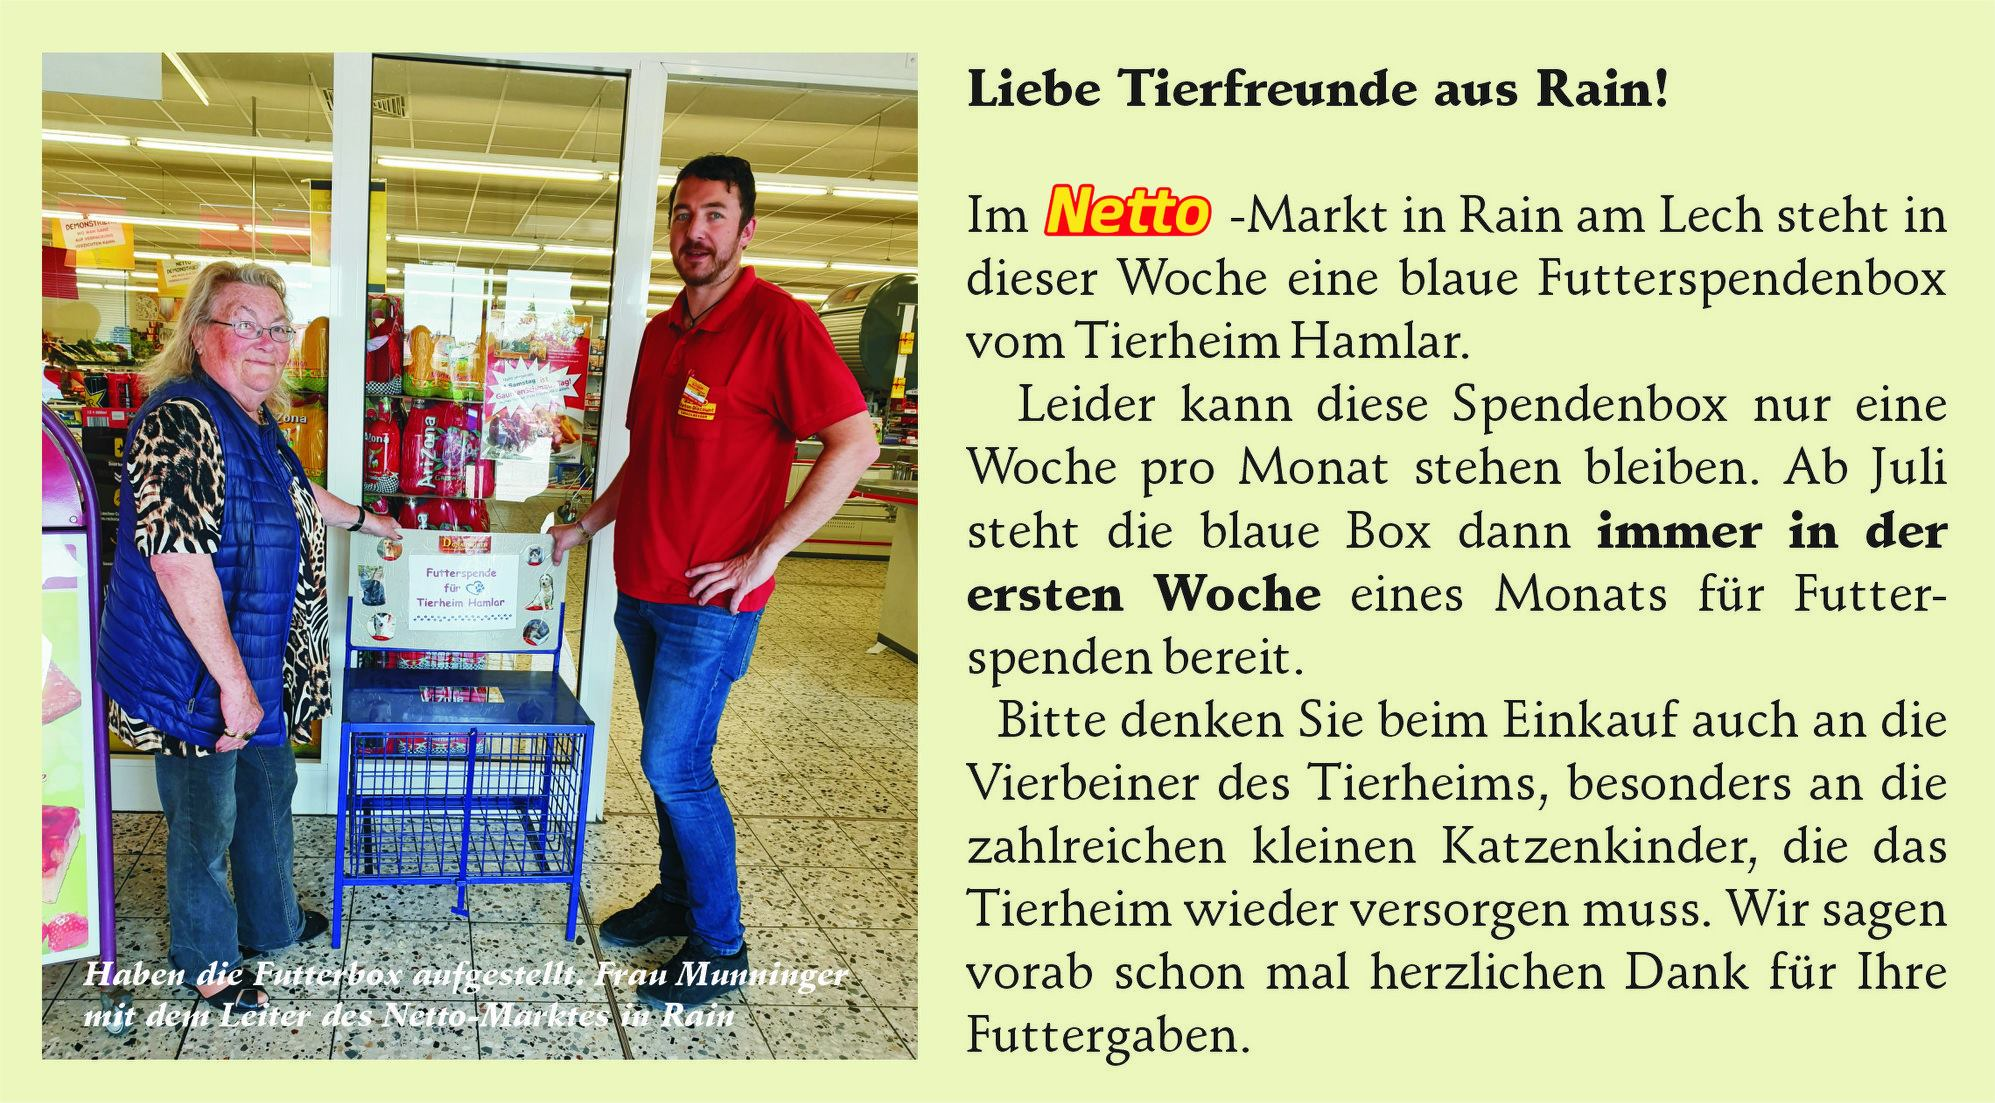 Spendenbox im Netto